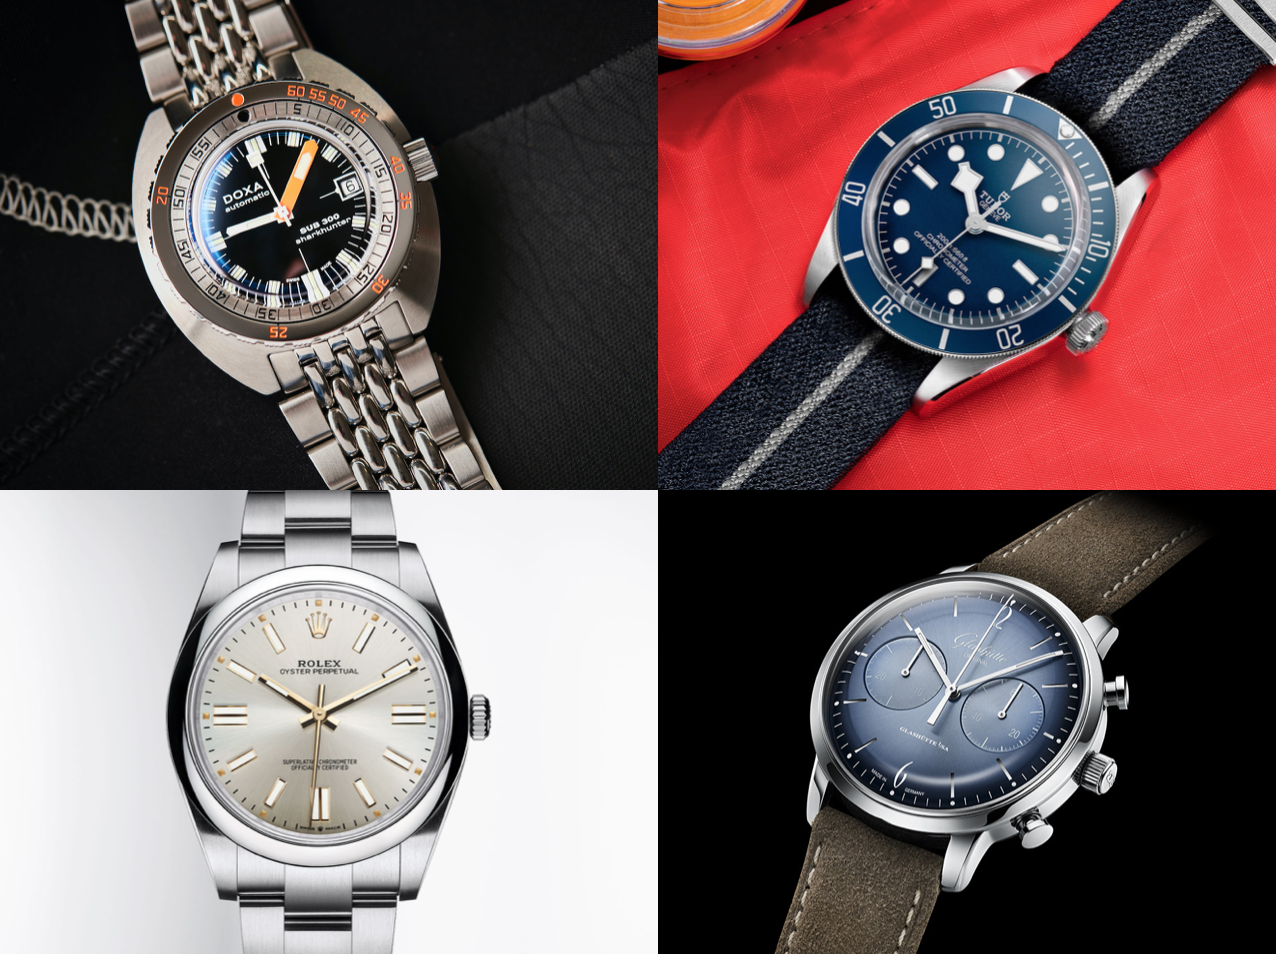 2020 FANTASY WATCH COLLECTION PART 2 – What watches would we buy with a budget of $10,000 USD?